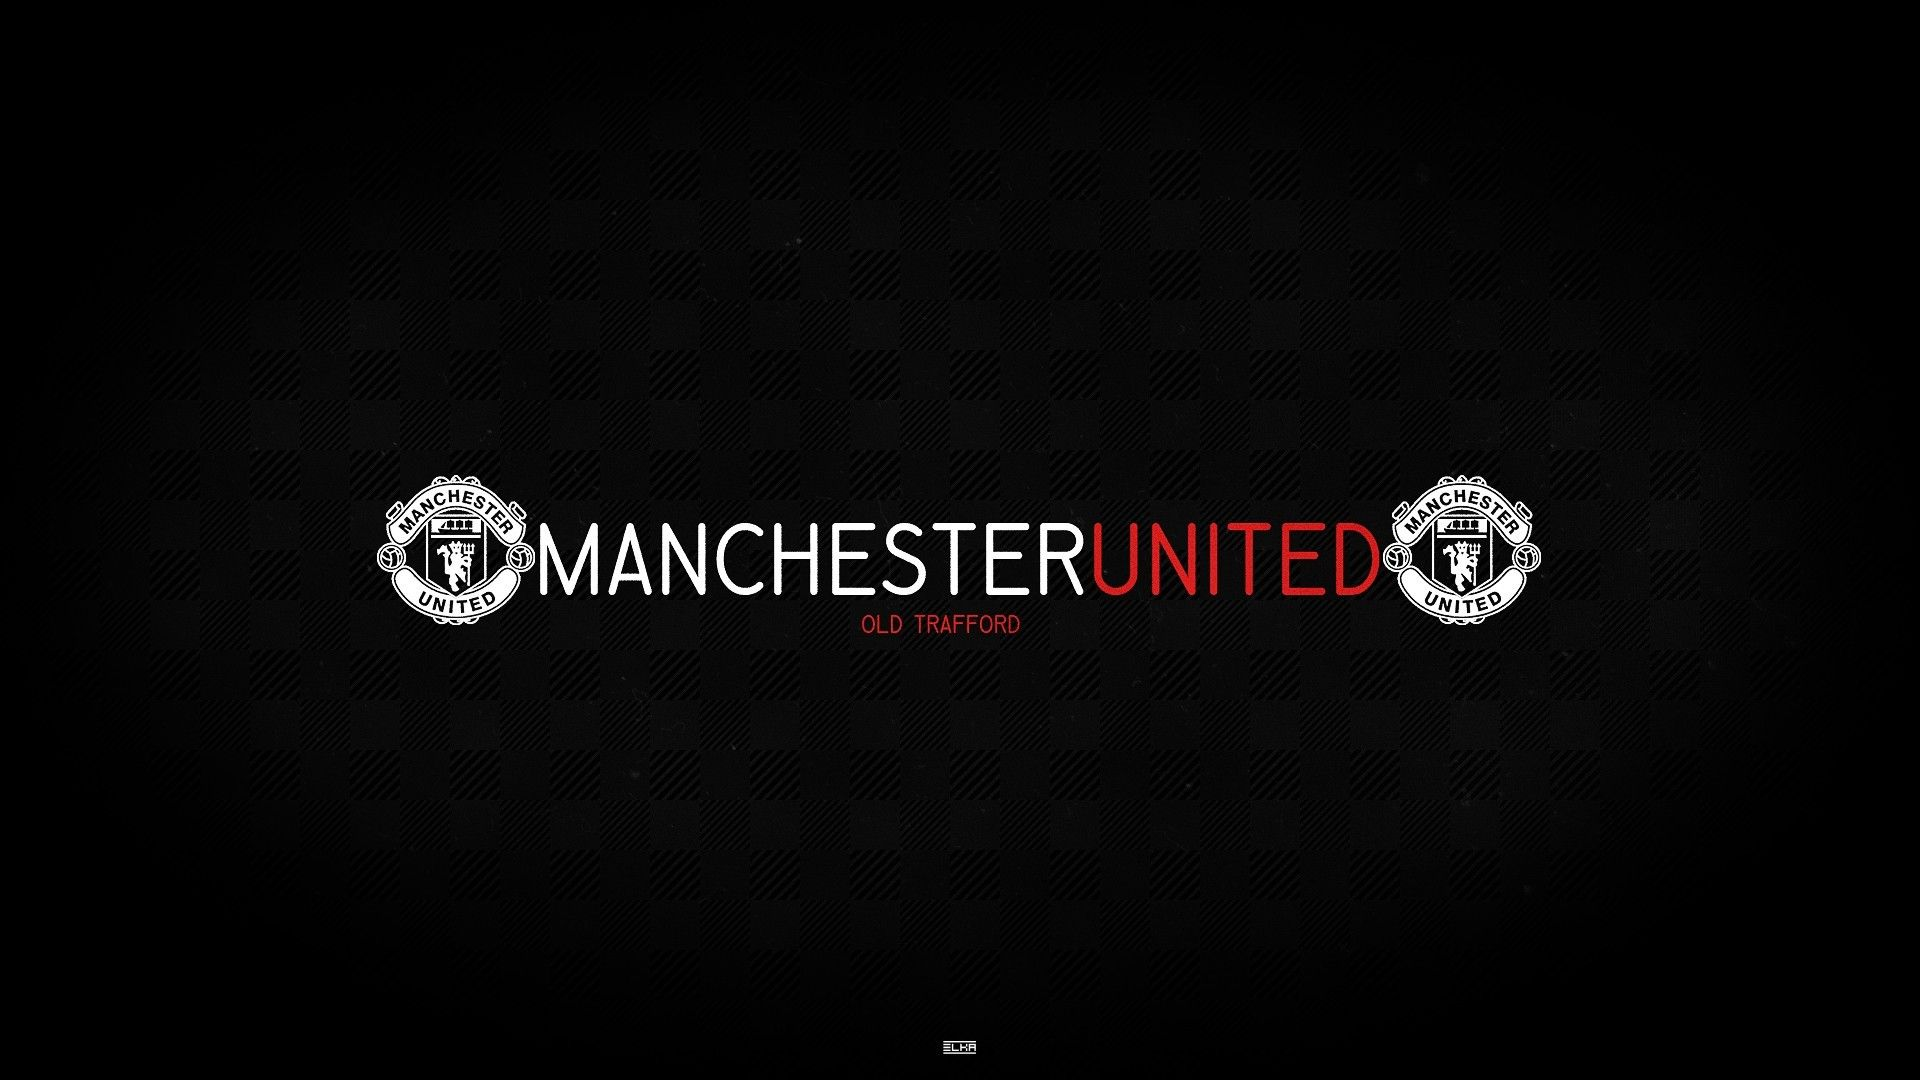 71 Man Utd Wallpapers On Wallpaperplay In 2020 Manchester United Wallpaper Manchester United Images Manchester United